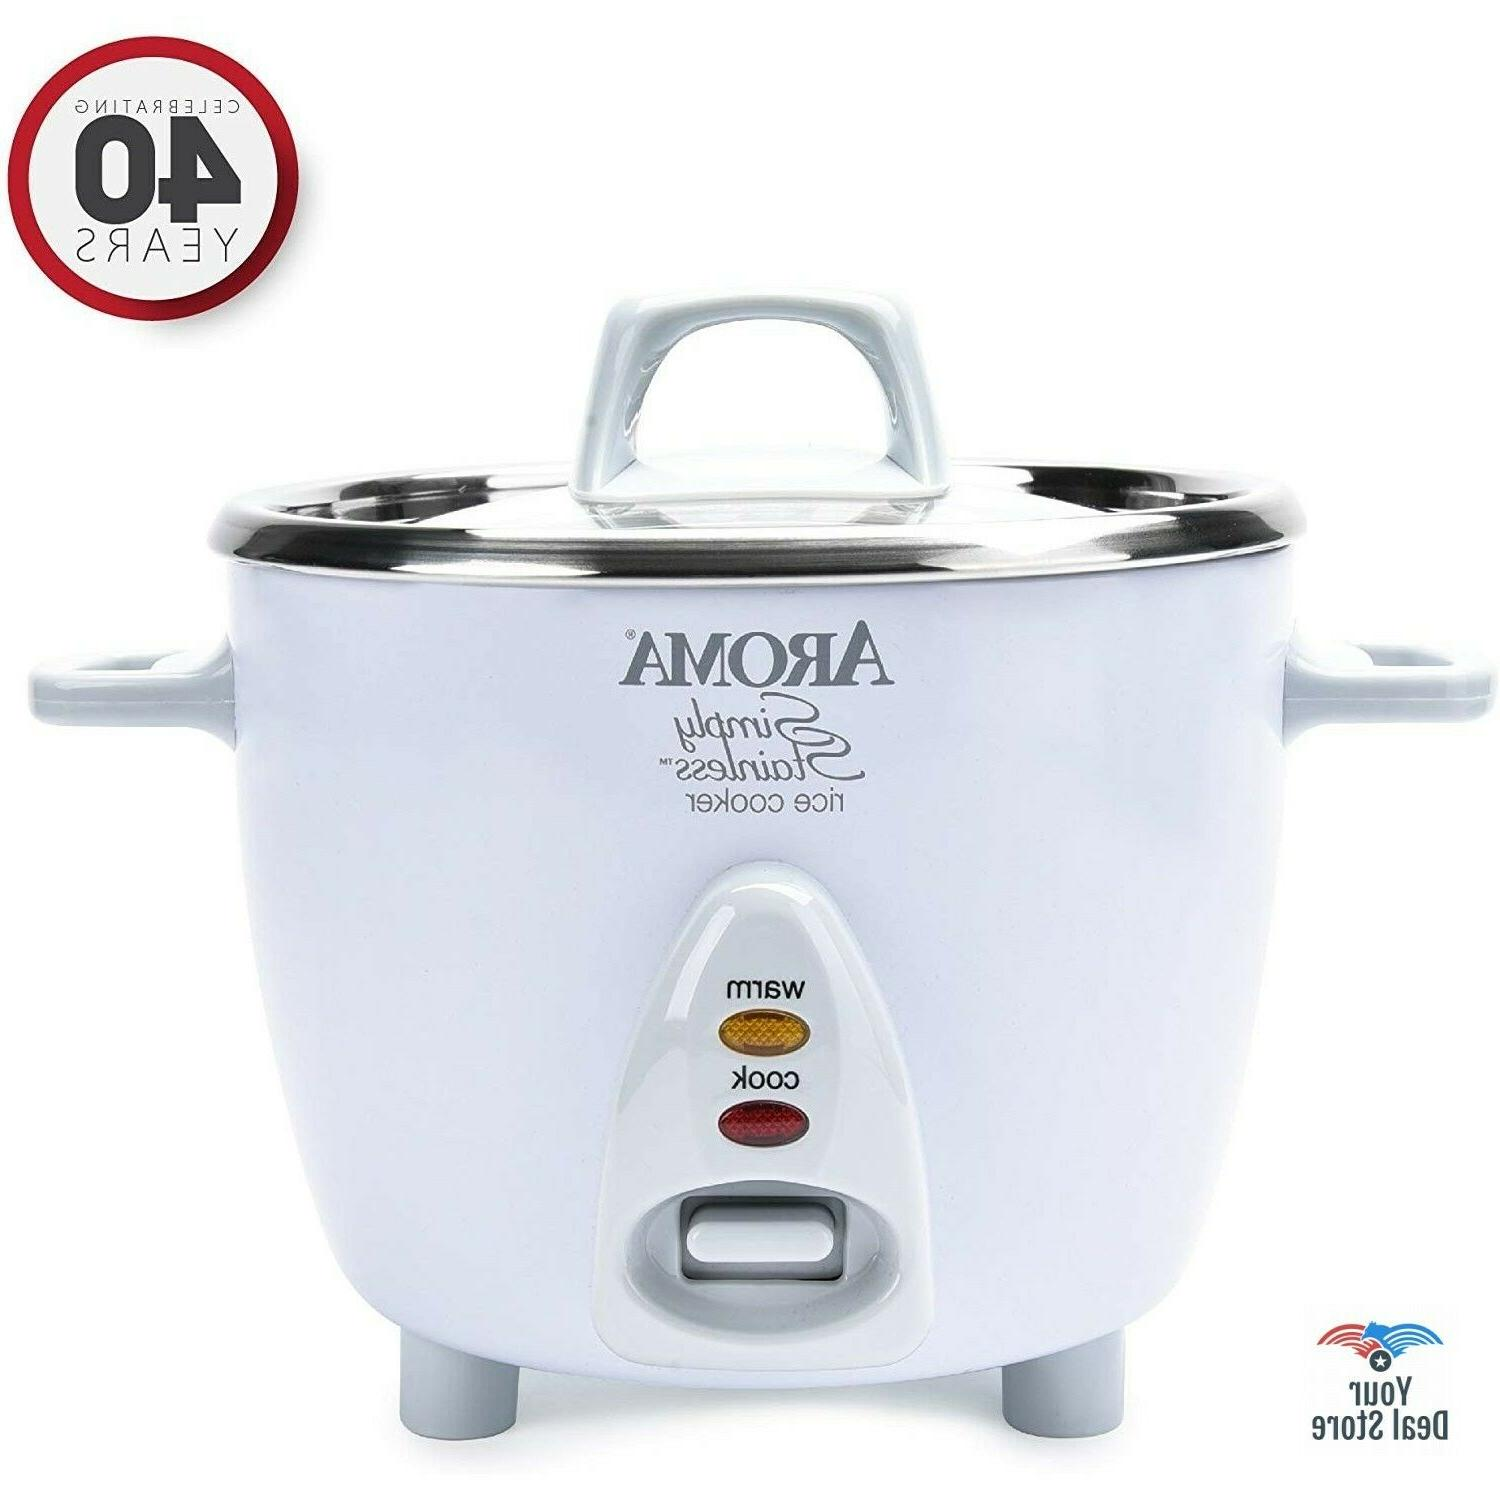 rice cooker soup maker cooking pot stainless